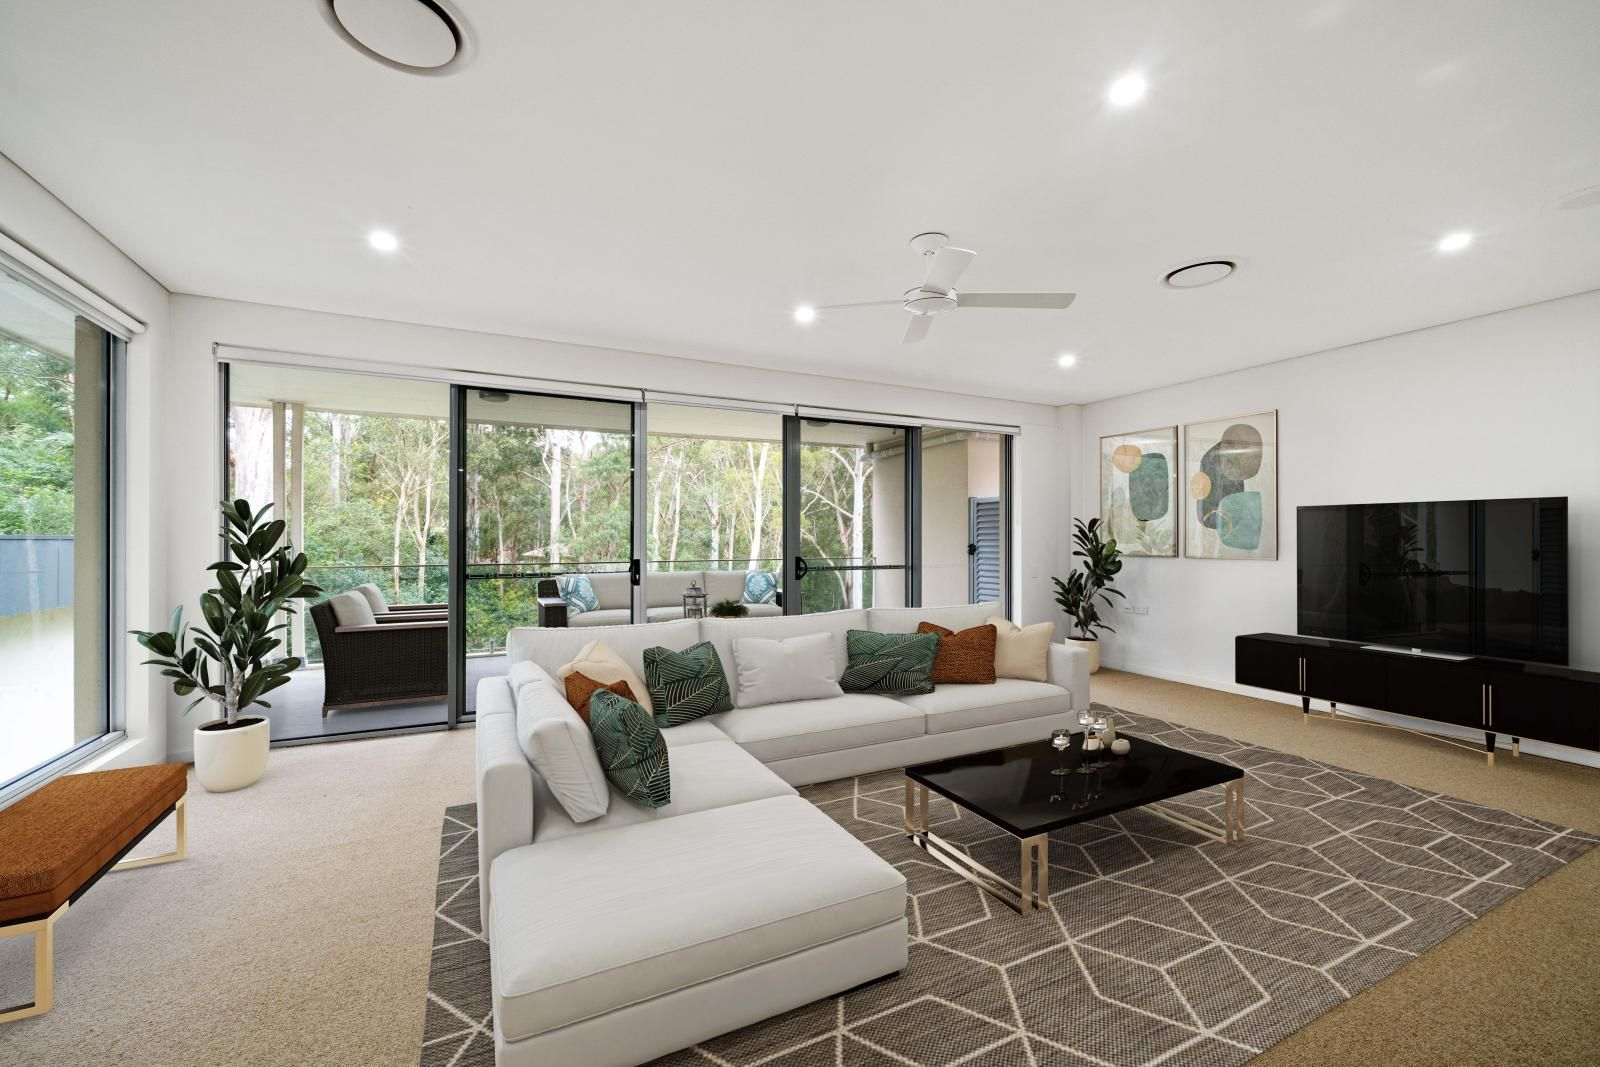 20/131-135 Mona Vale Road, St Ives NSW 2075, Image 0